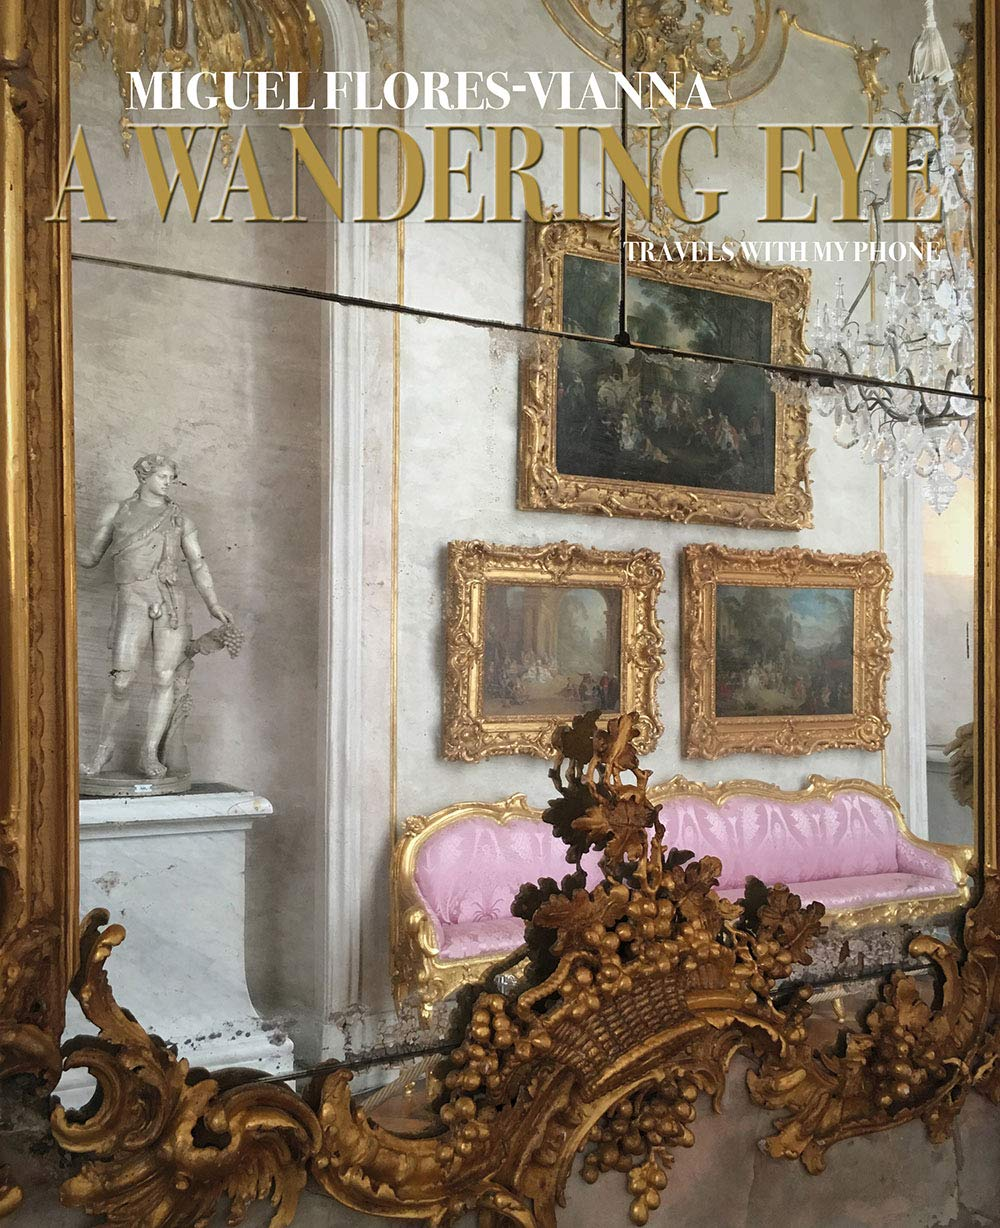 Book cover for A Wandering Eye by Miguel Flores-Vianna.